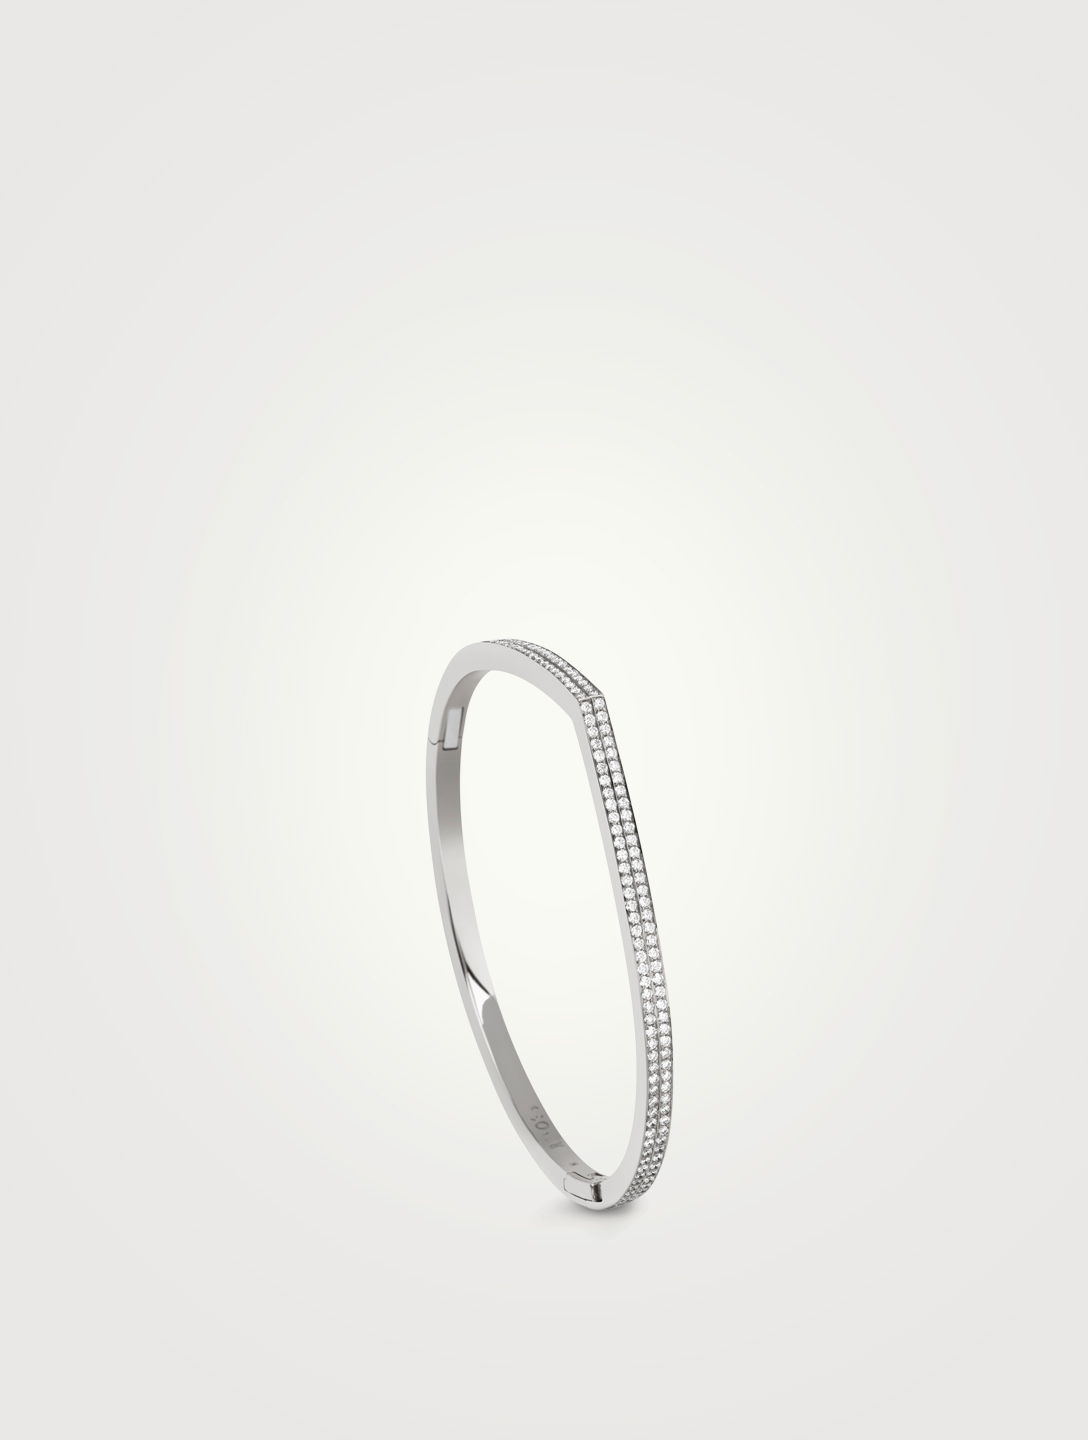 REPOSSI Antifer White Gold Bracelet With Diamonds Women's Silver